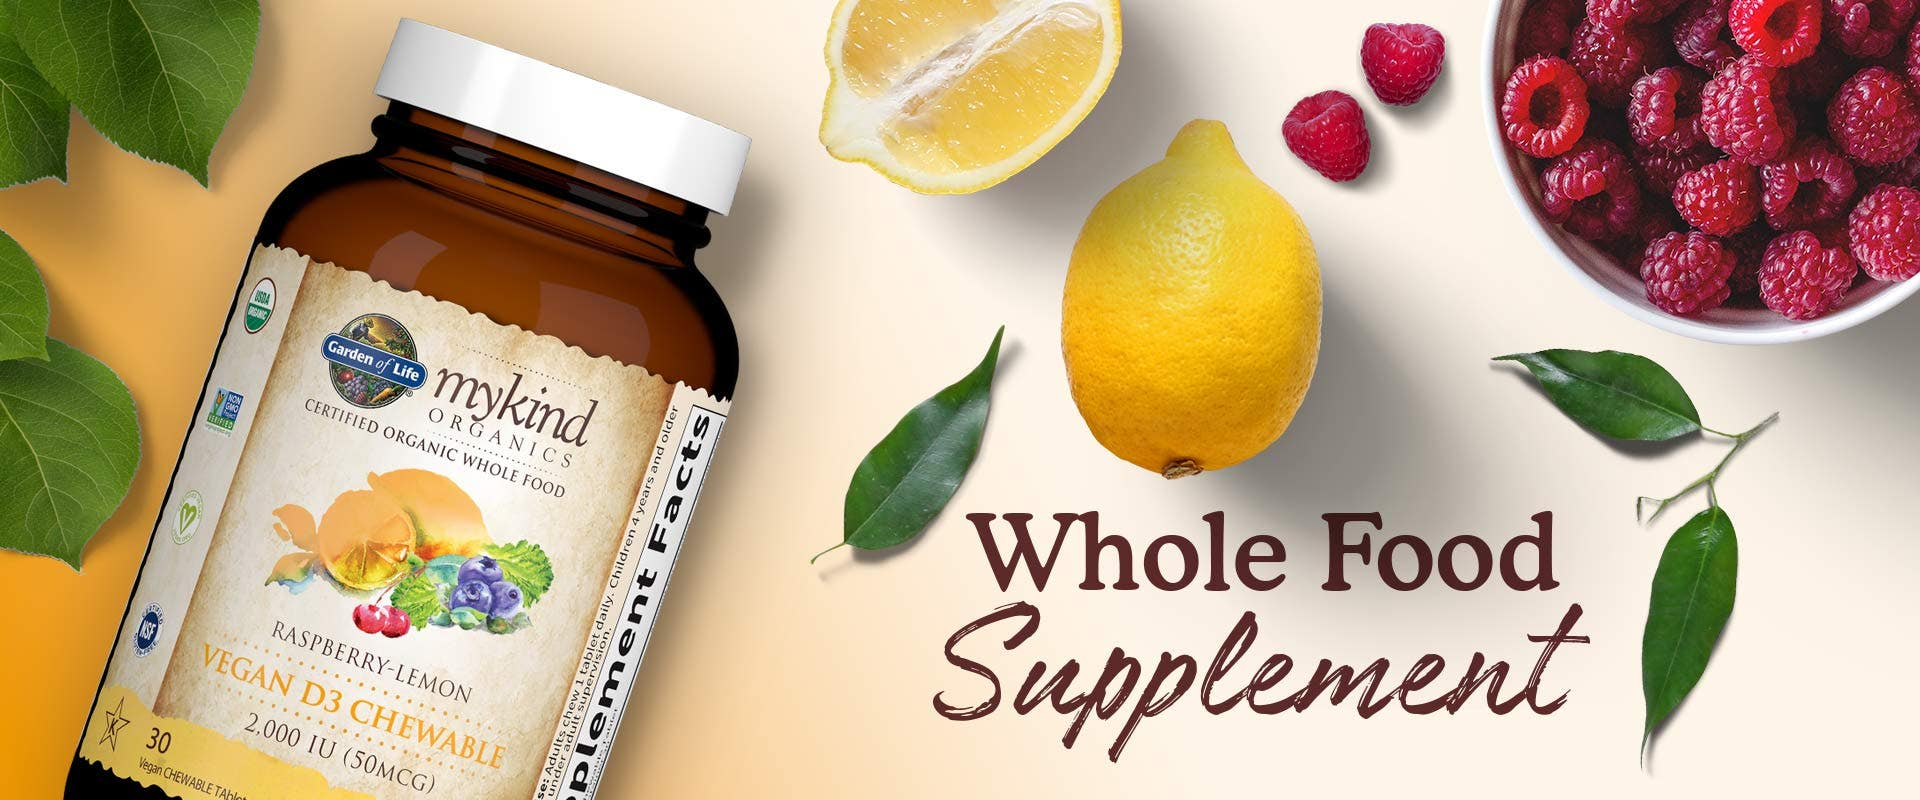 vitamin d chewable whole food mykind by garden of life